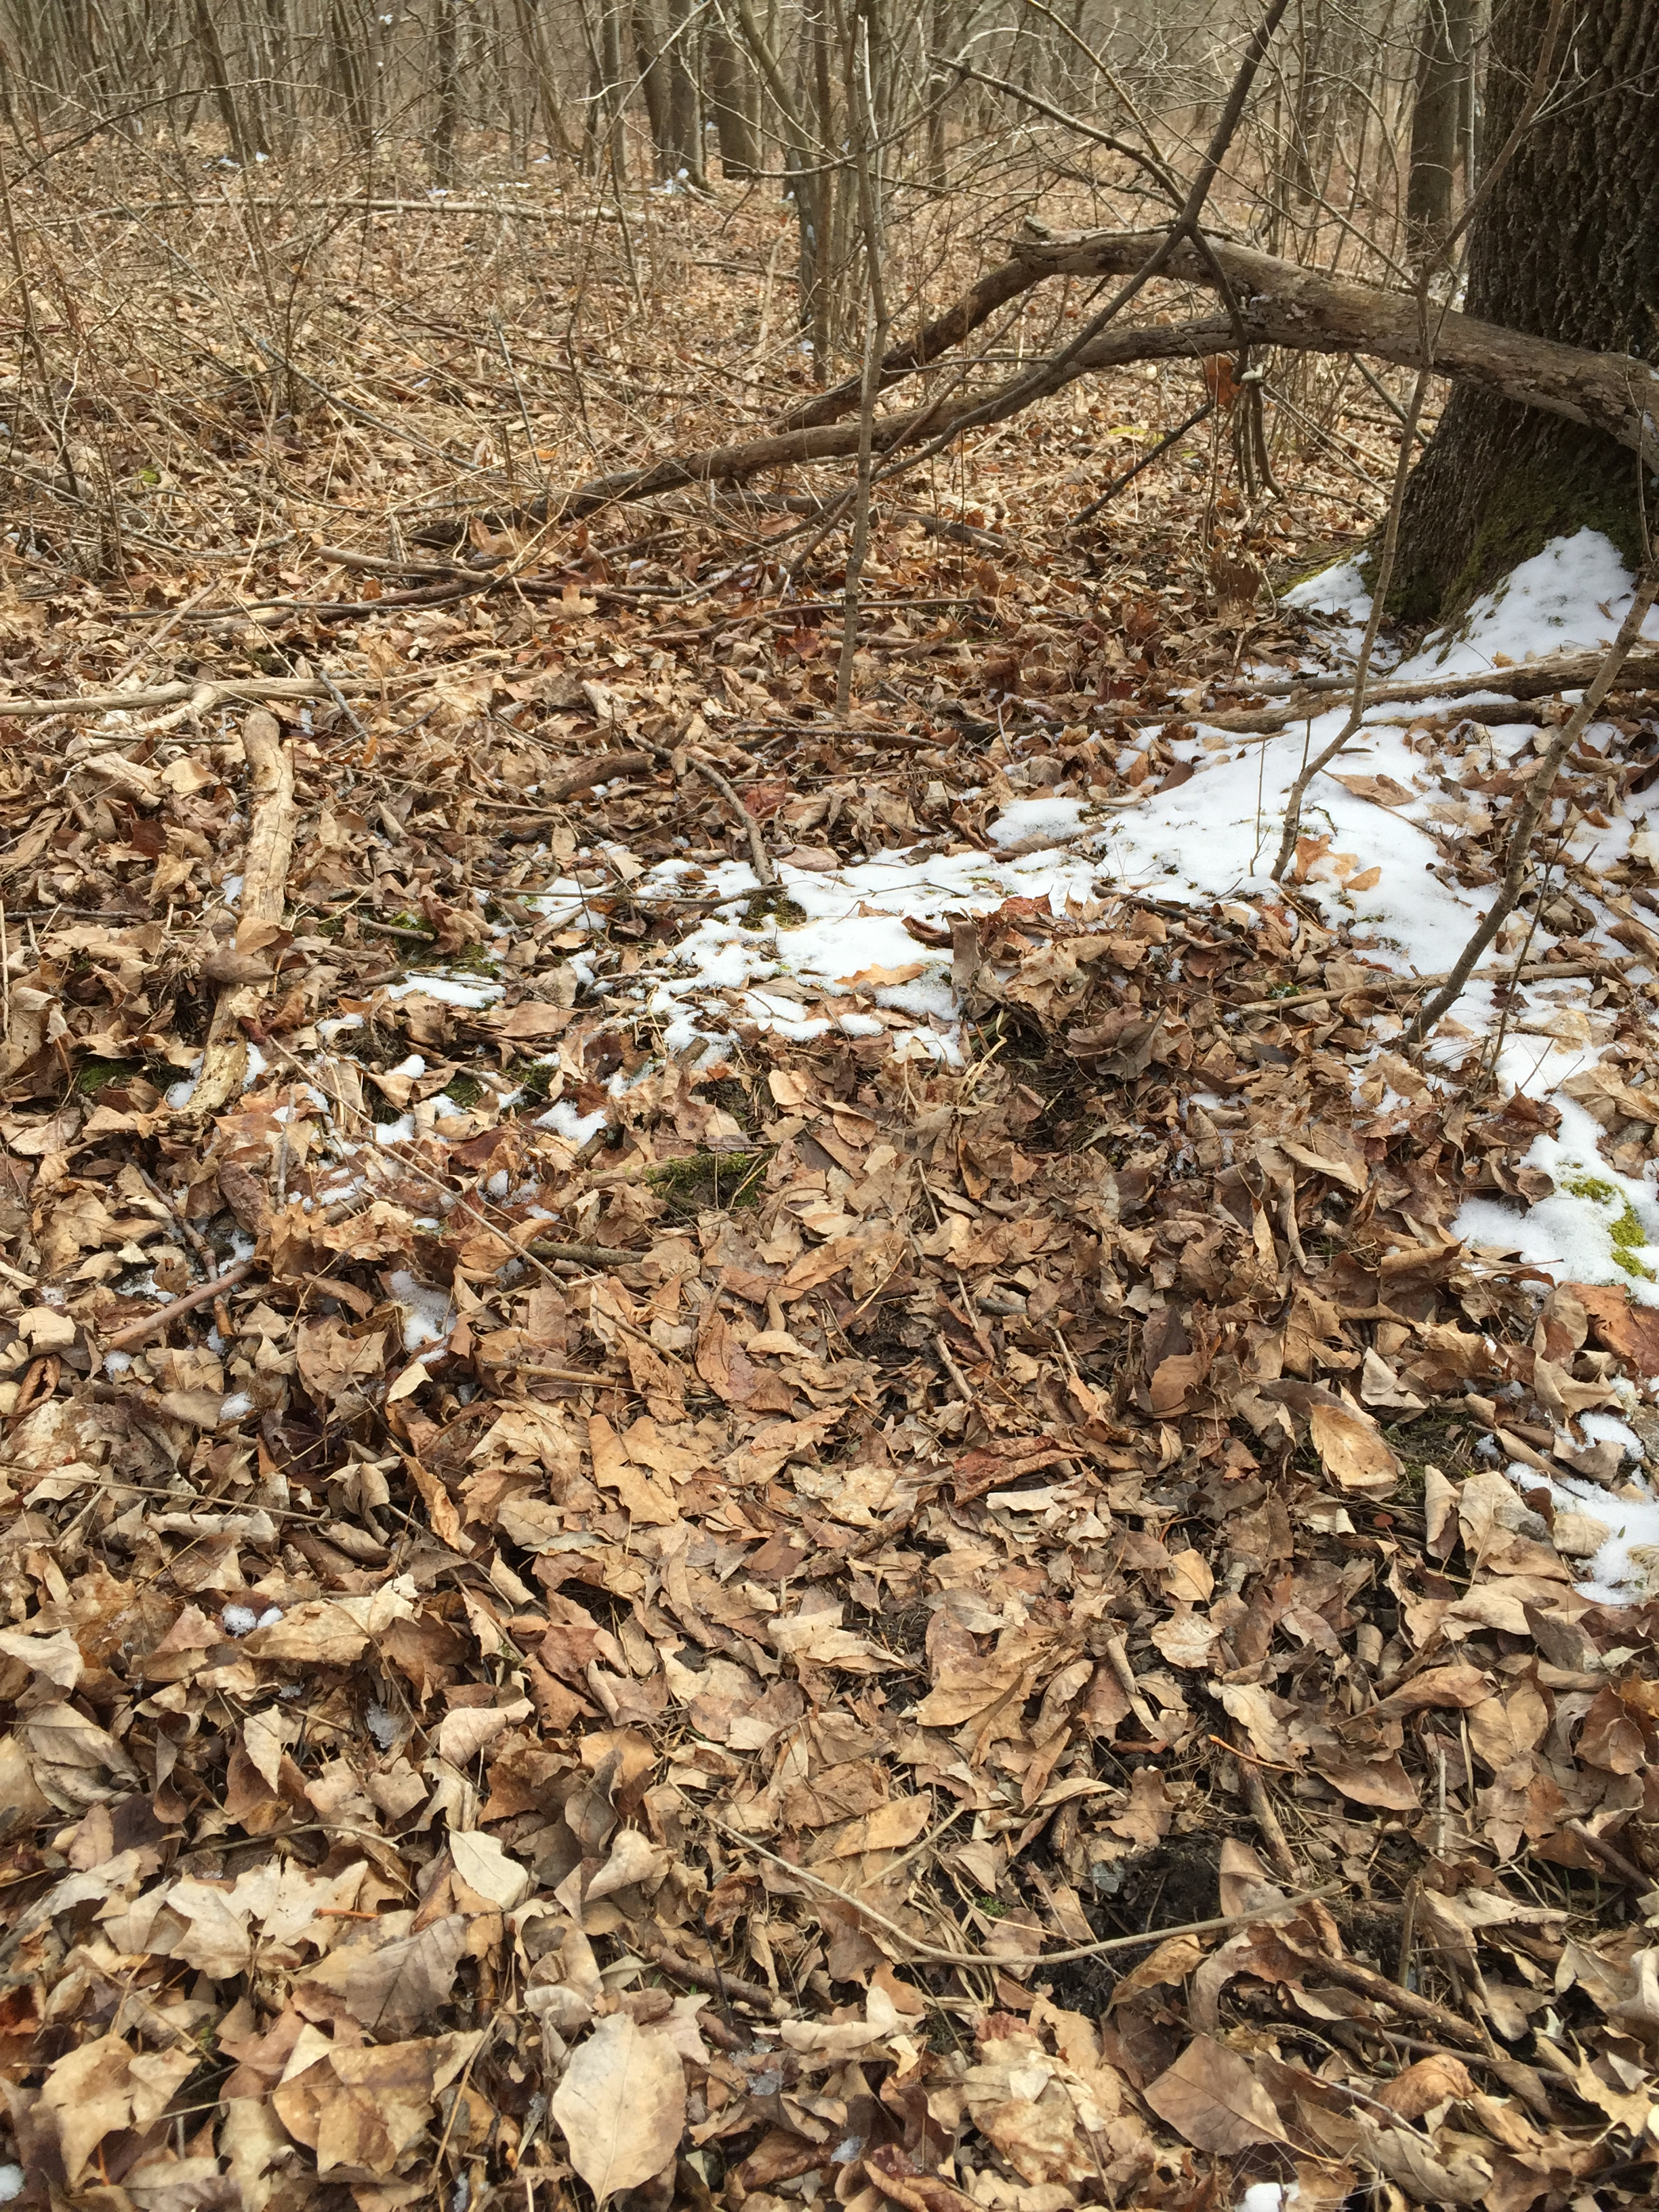 Beds may be just slight depressions in the leaves